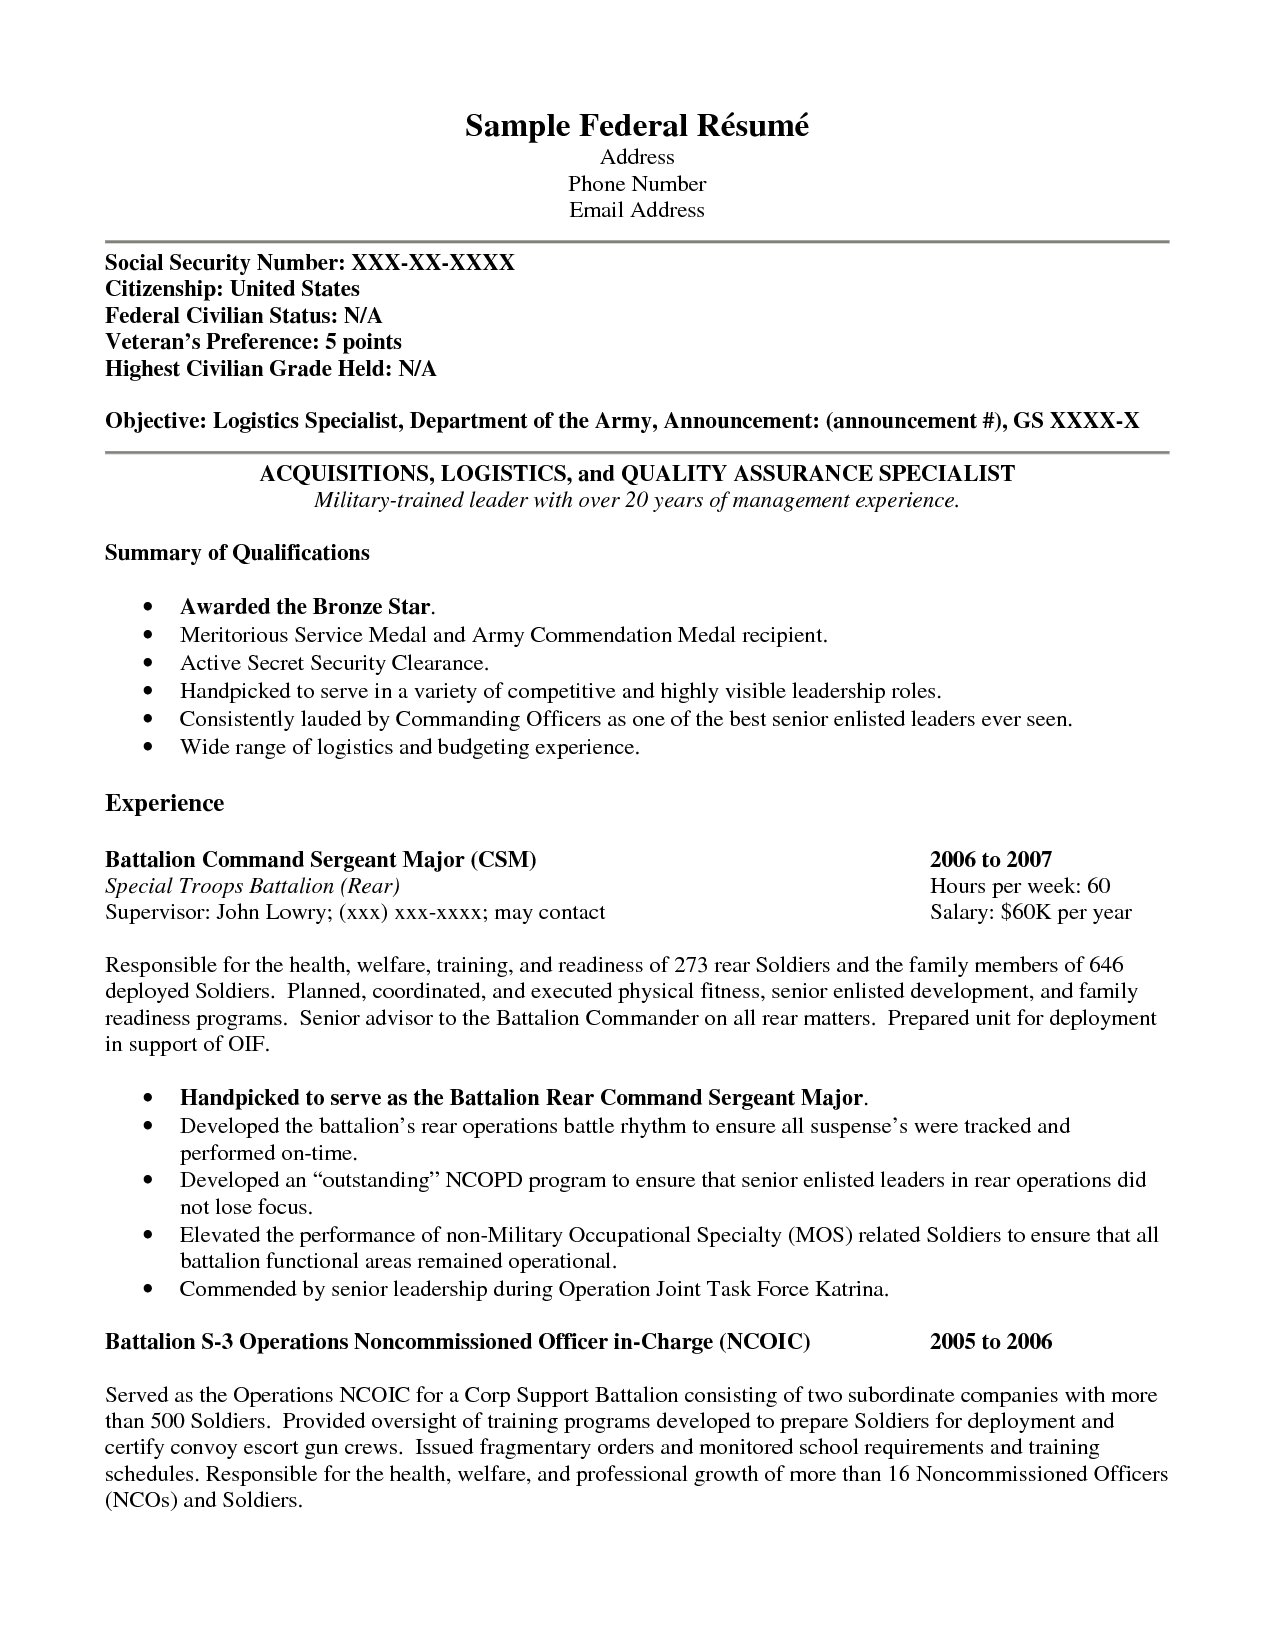 Free Military Resume Builder Templates And Service For Veterans